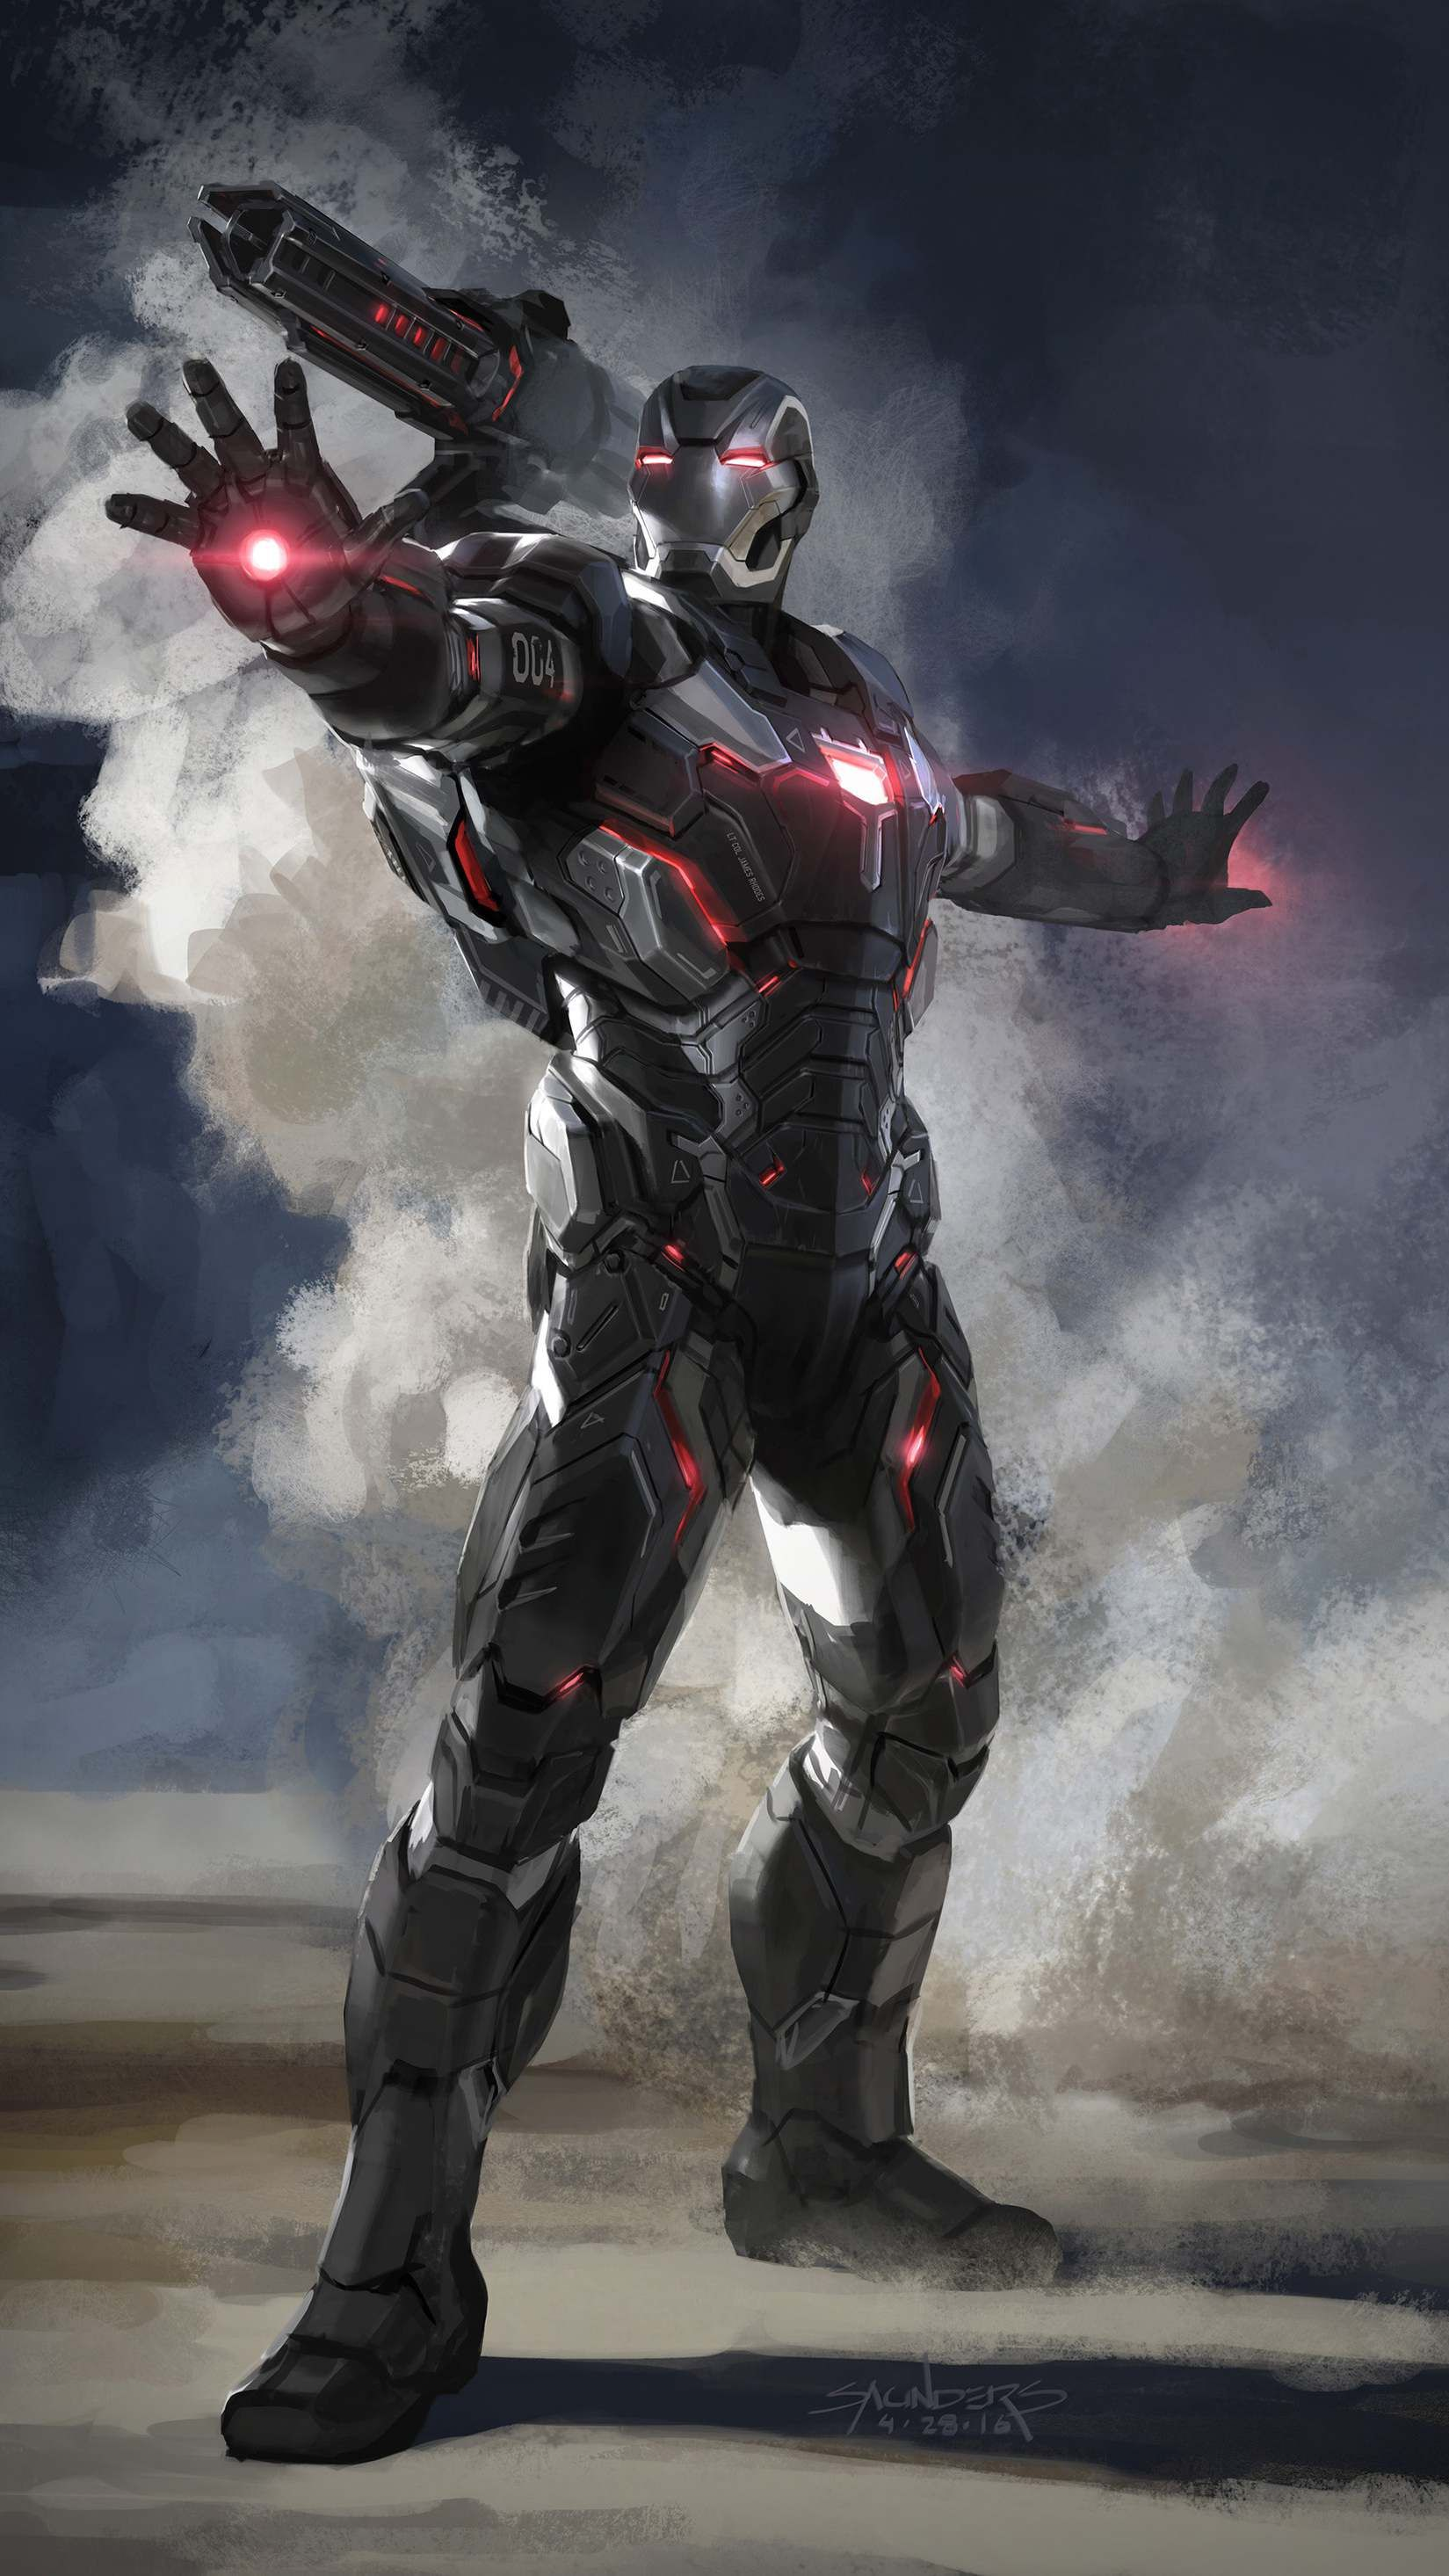 Avengers Endgame War Machine Armor Iphone Wallpaper Avengers